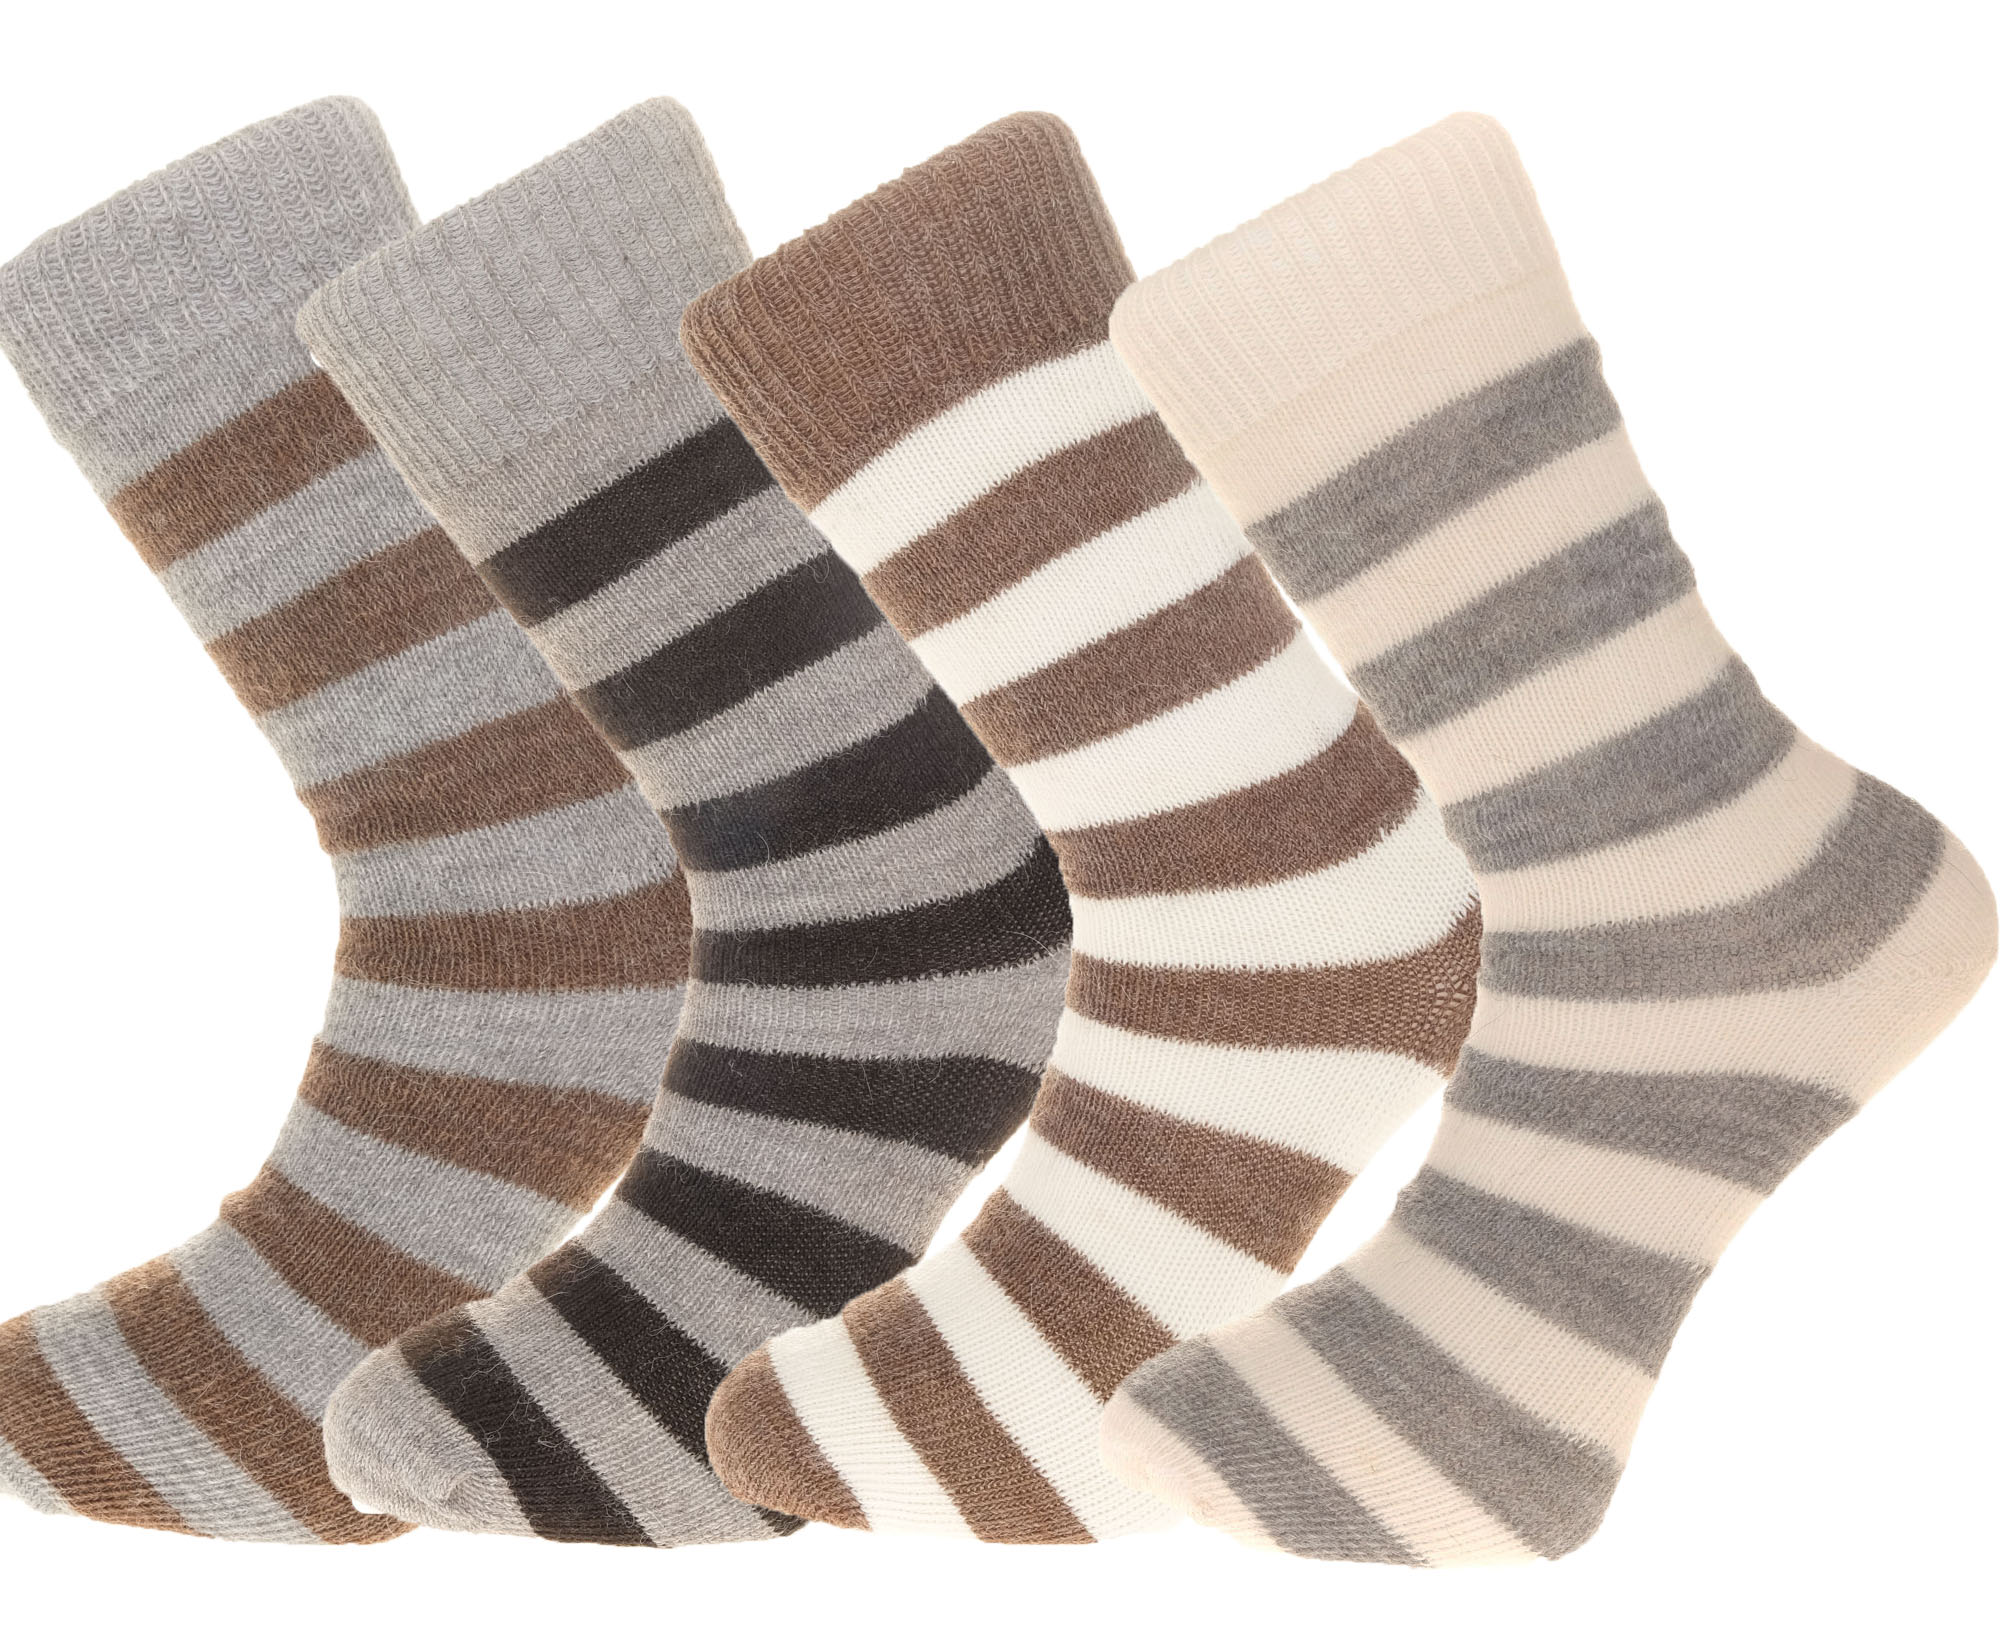 Gift Pack Idea N 4 pairs of Alpaca Striped Socks, 55% Alpaca Wool.  Alpaca Sock